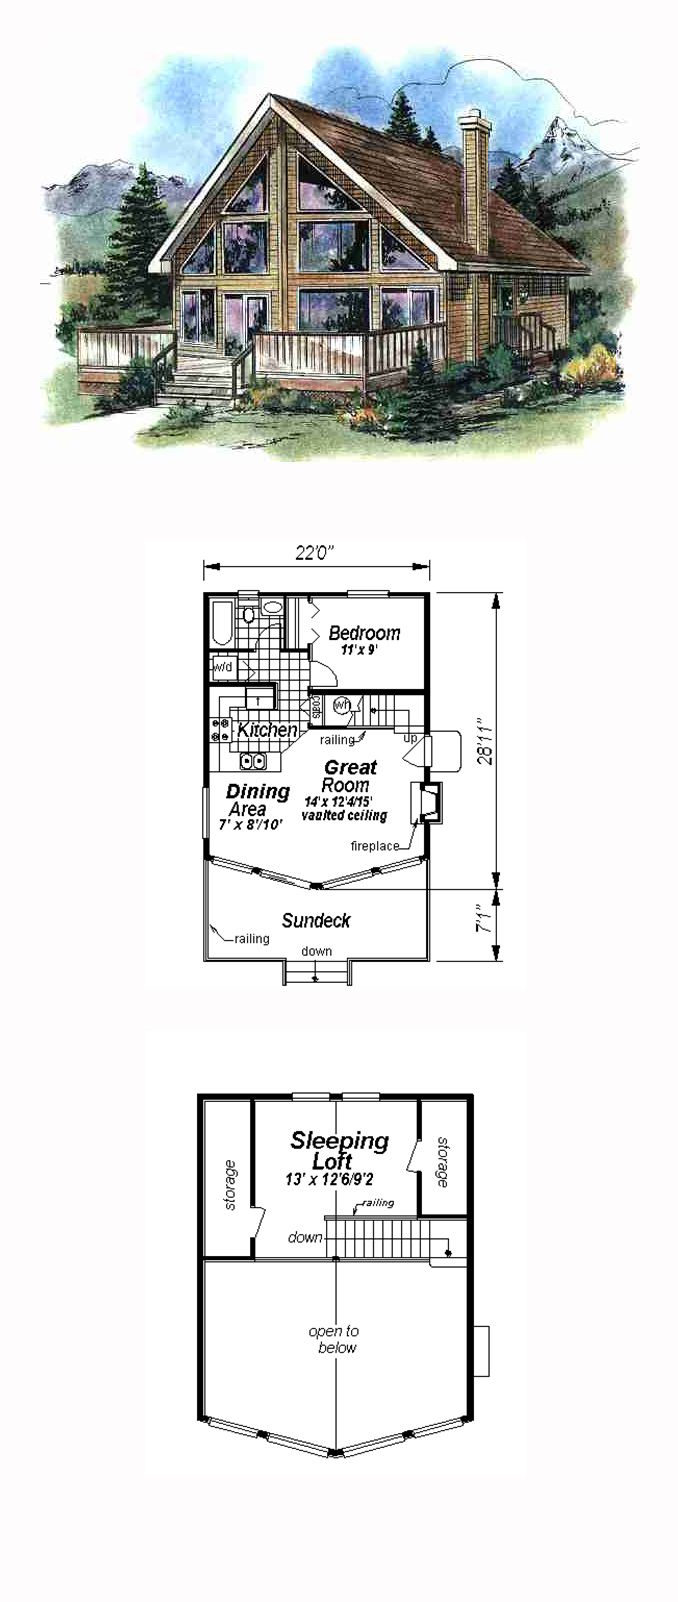 444 Best House Plans Images On Pinterest Floor Plans: cool small home plans